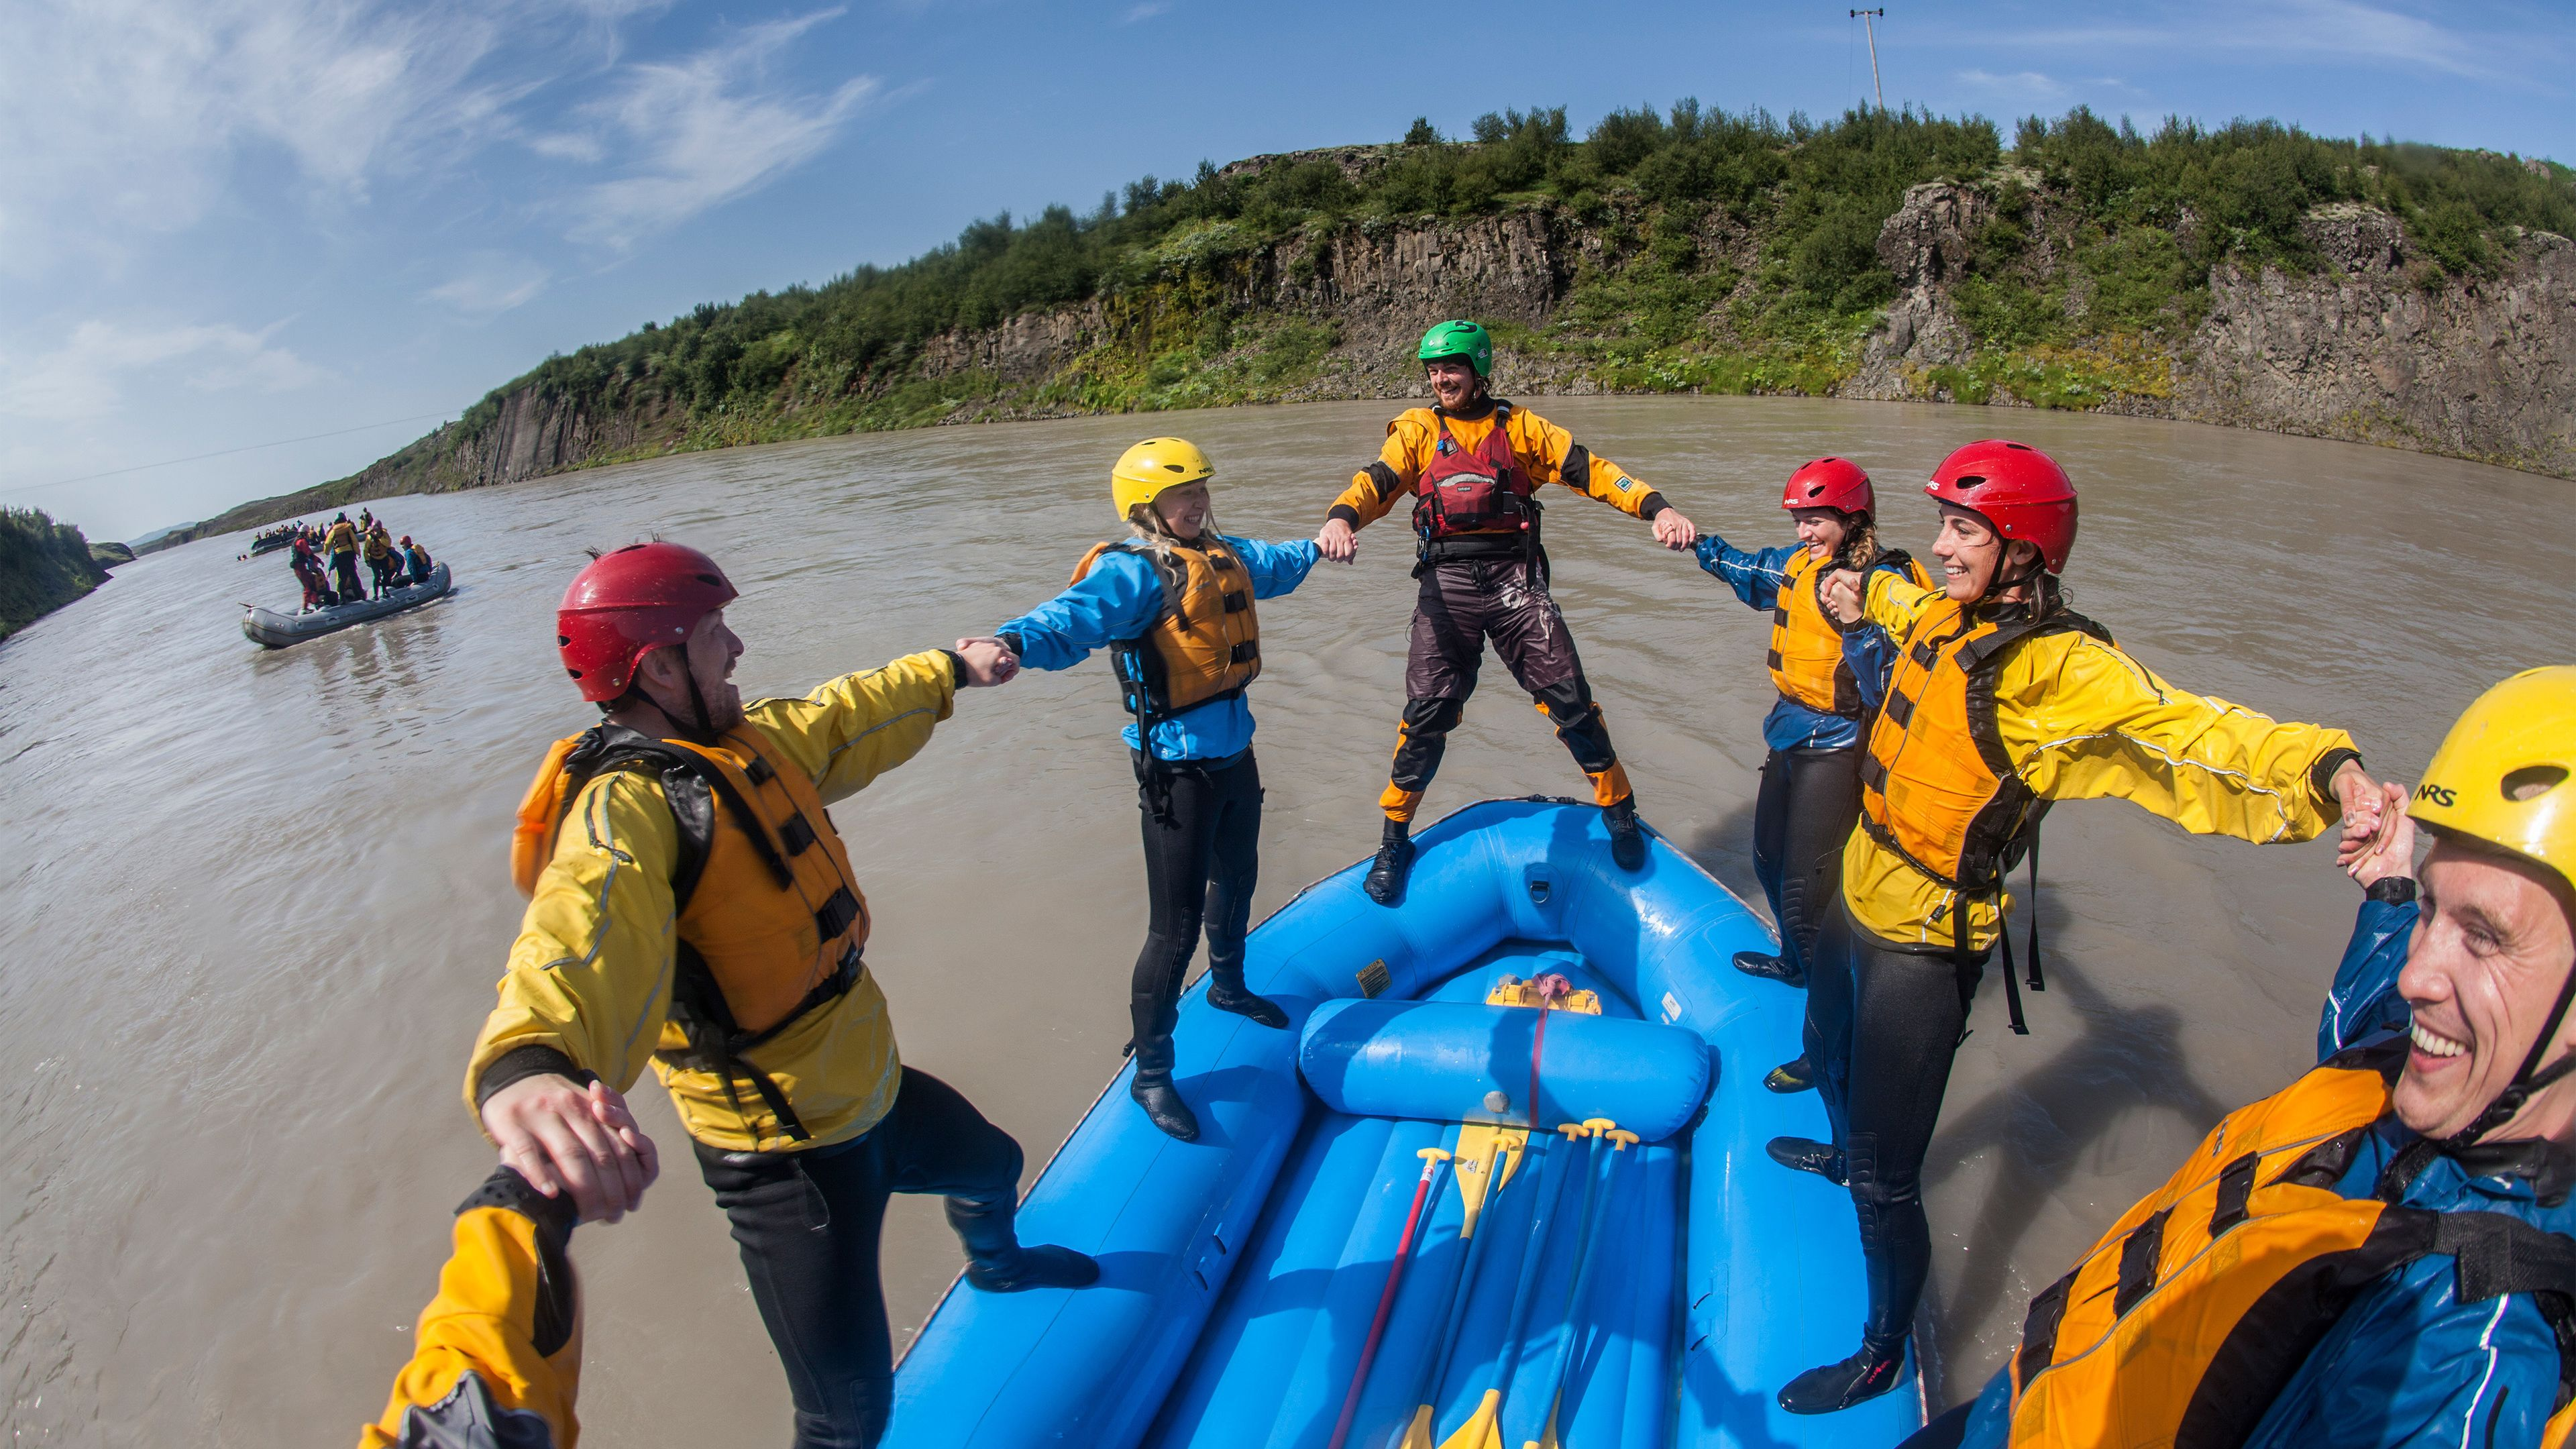 Group on a rafting adventure at Gullfoss Canyon in southwest Iceland